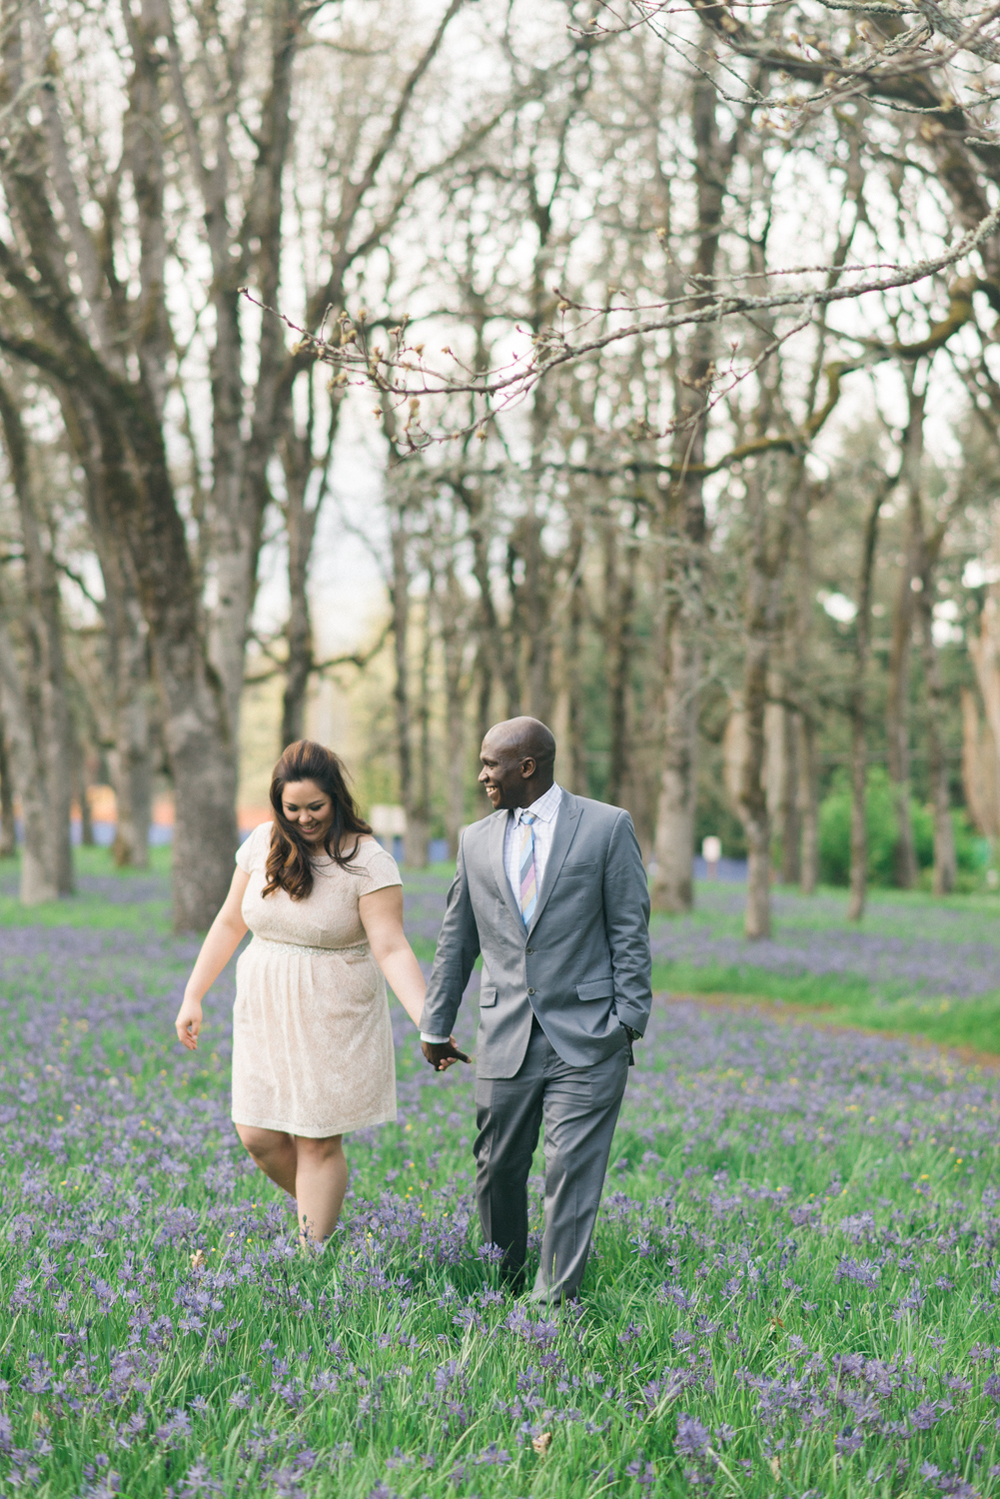 romantic-salem-engagement-photos-bush-park-shelley-marie-photo-17